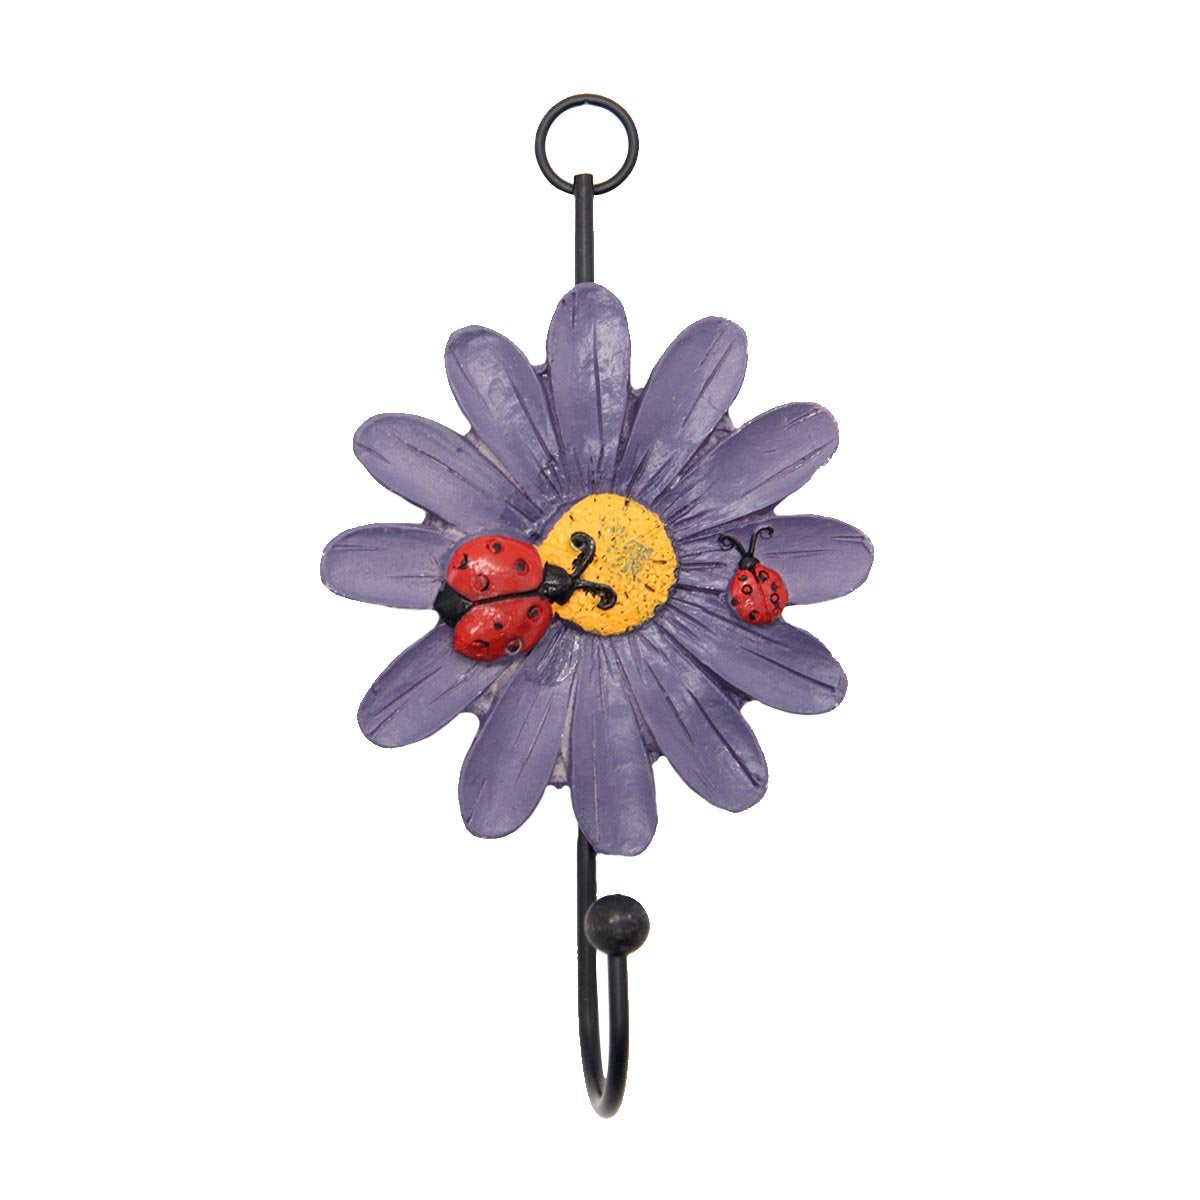 Mochiglory Home Decoration Cute Ladybug and Daisy Flower Resin Wall Hook Utility Wardrobe Hook